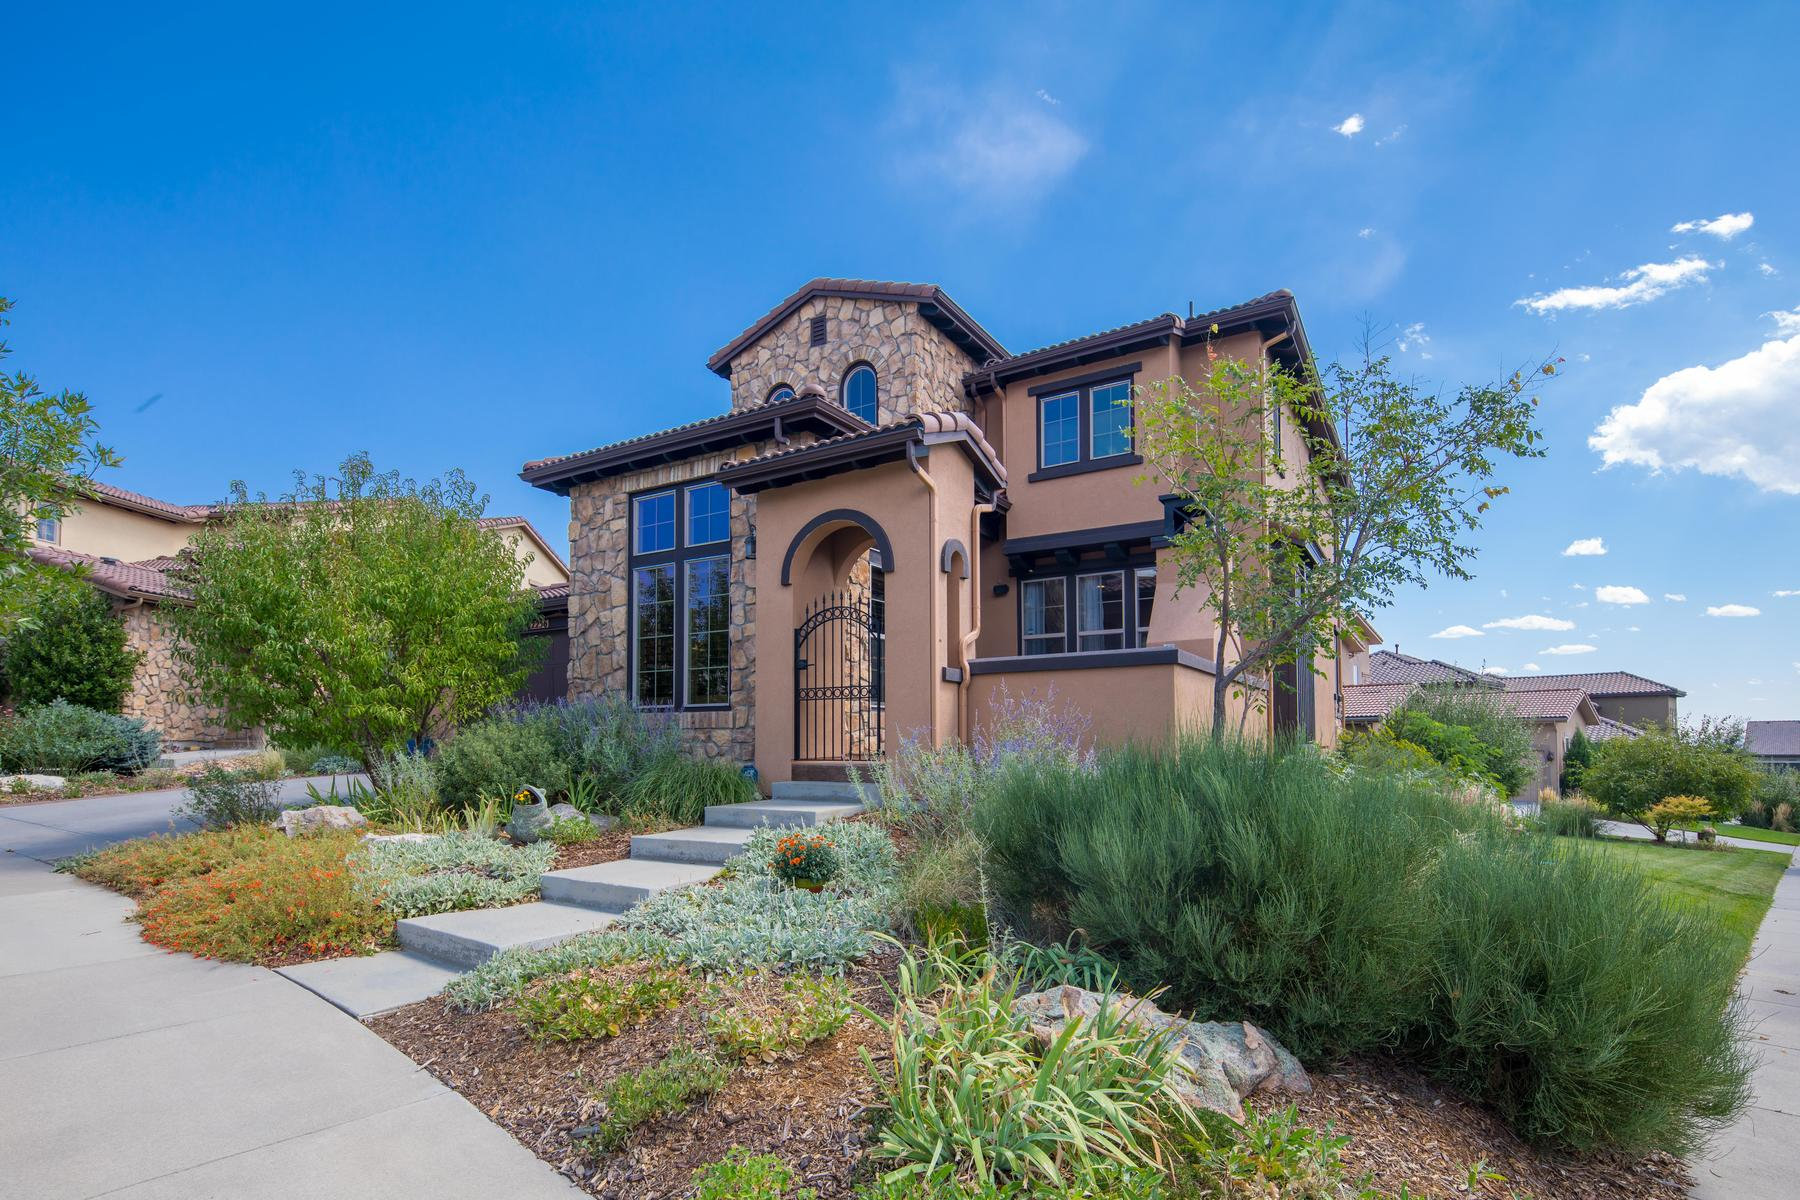 Single Family Home for Active at 2256 S Isabell Court 2256 S Isabell Court Lakewood, Colorado 80228 United States